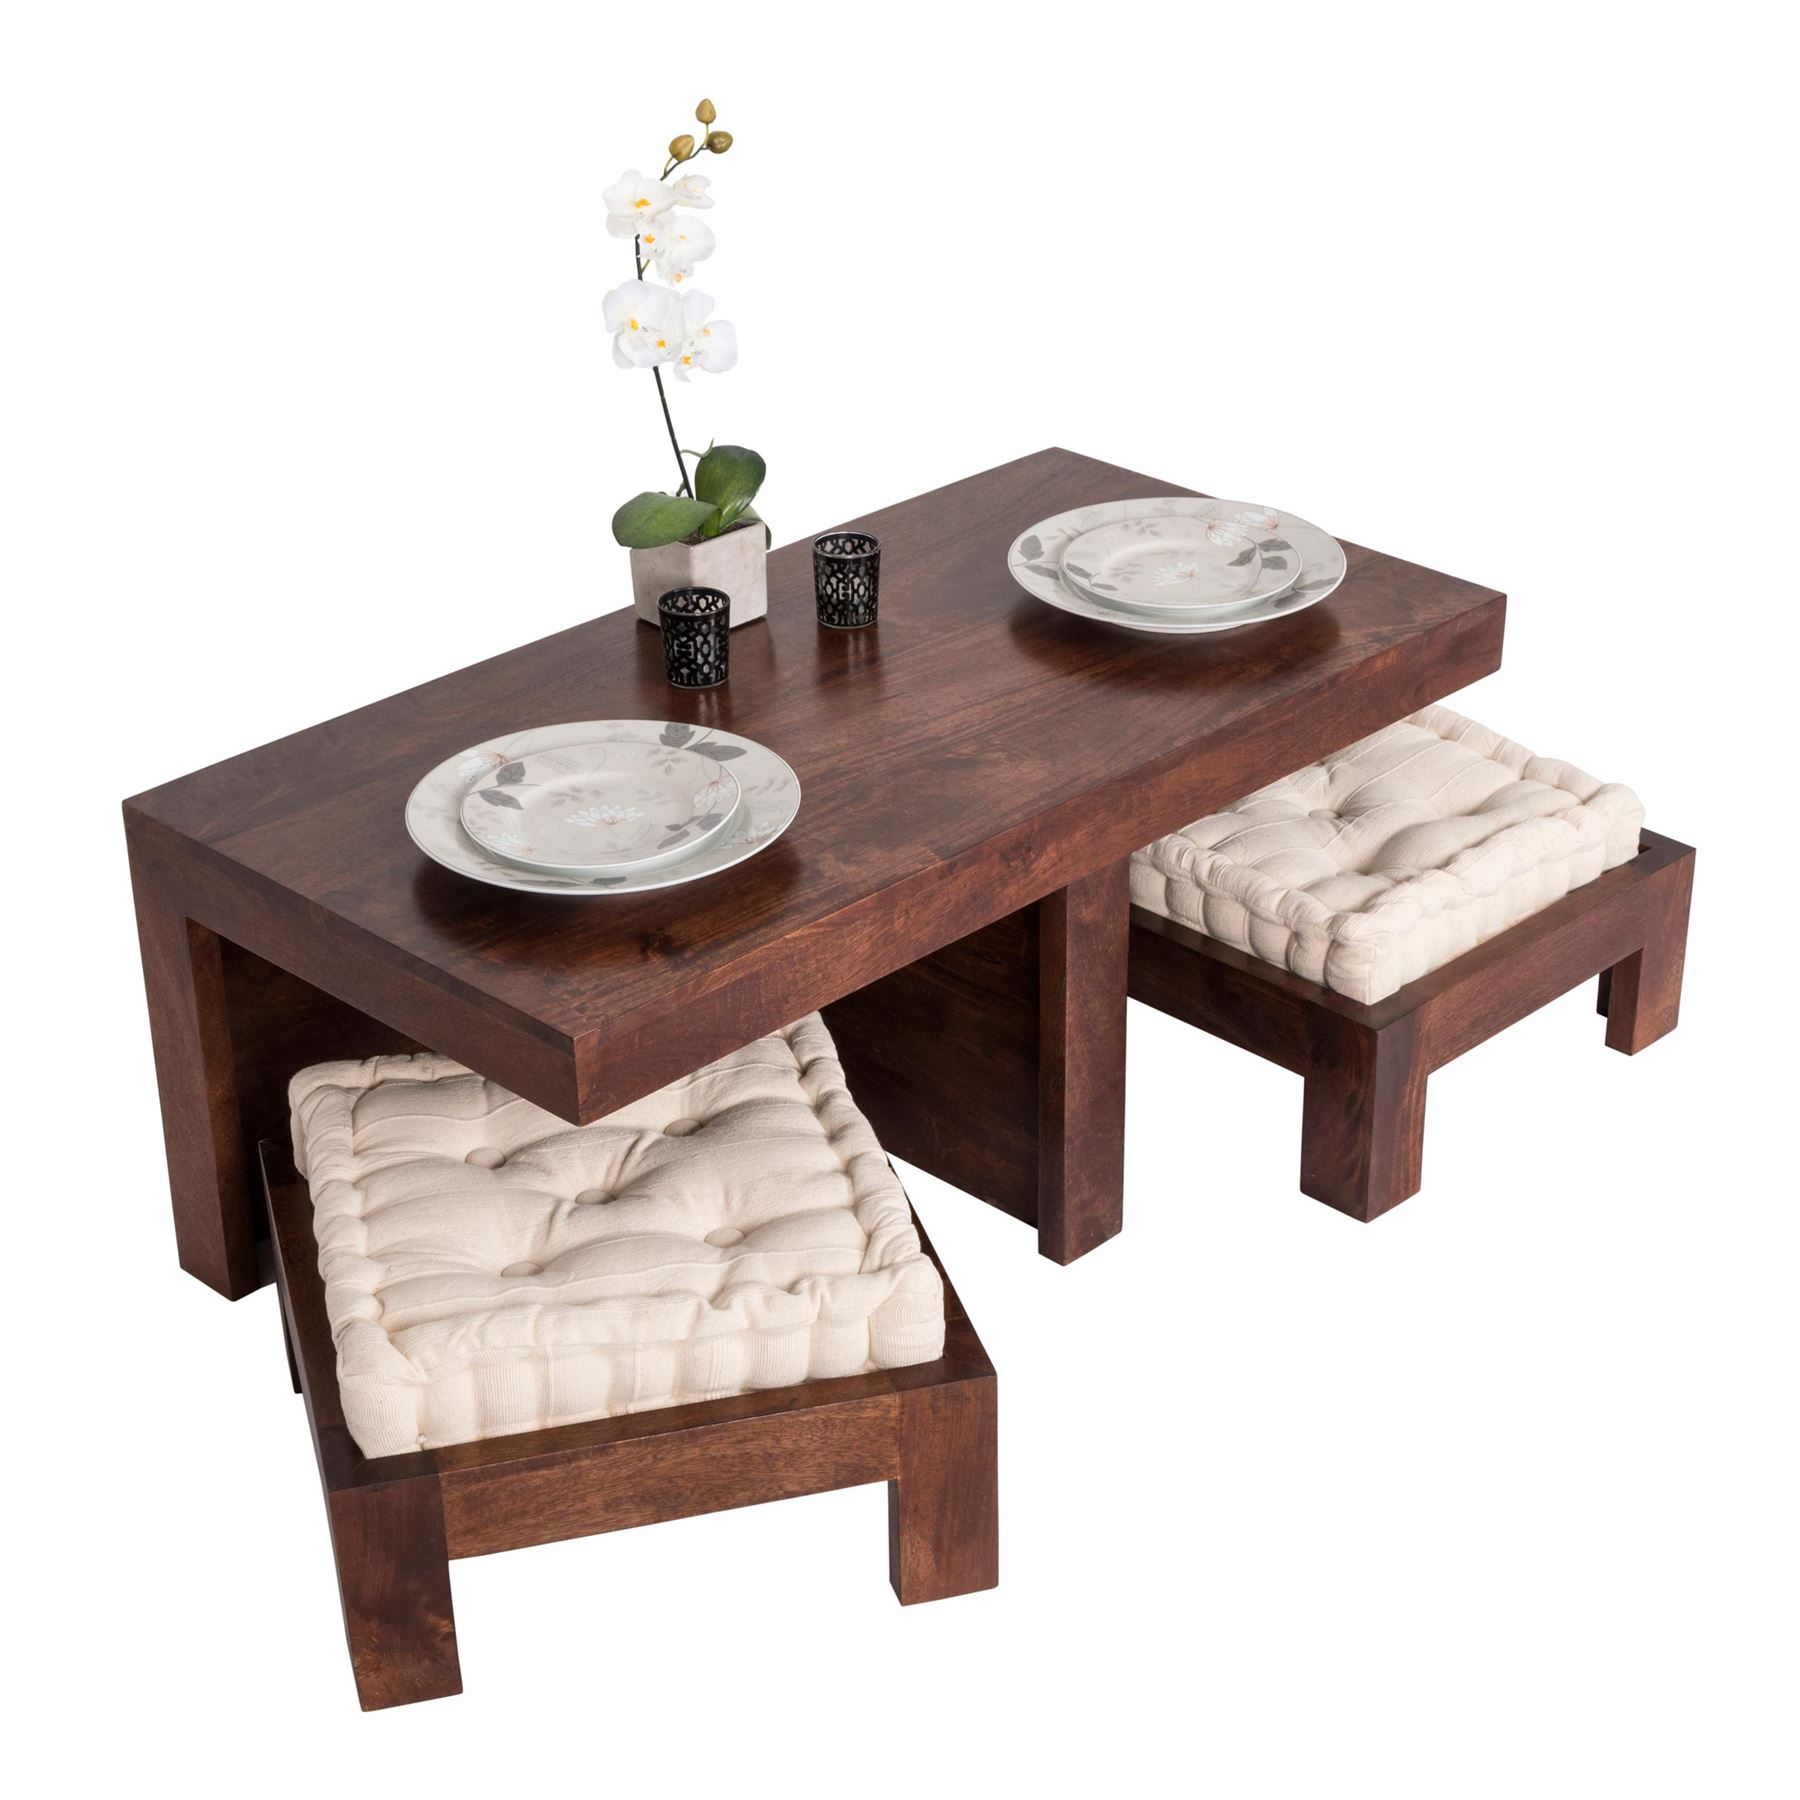 dark shade dakota compact coffee table set with two stools seat end tables details about pads solid wood diwan furniture metal and glass round dining marble bedside stone modern